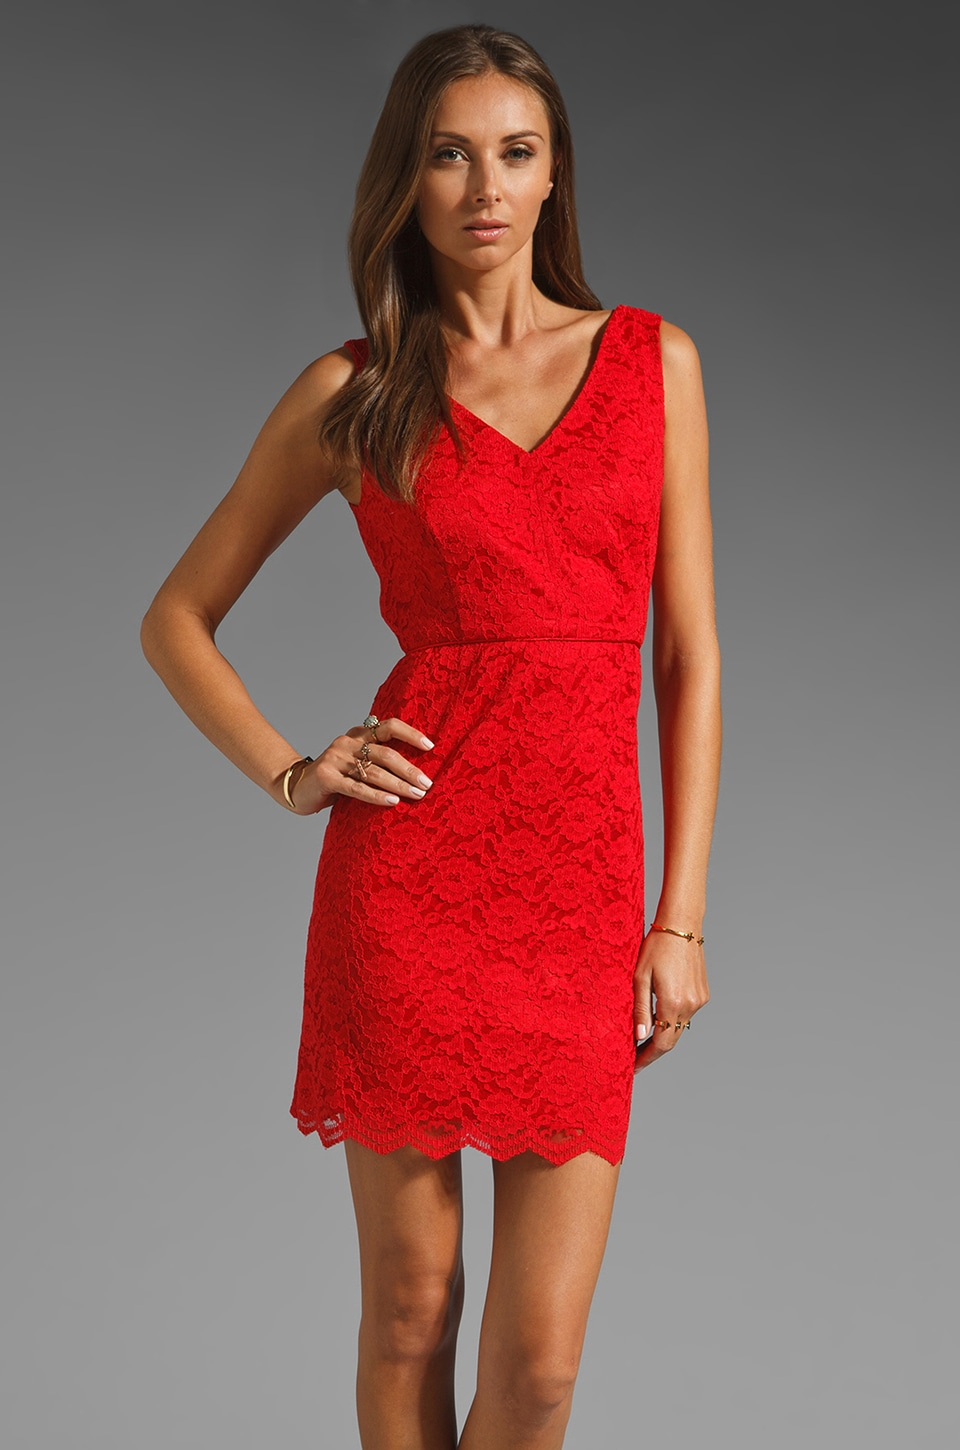 JARLO Marilyn Lace Dress in Red